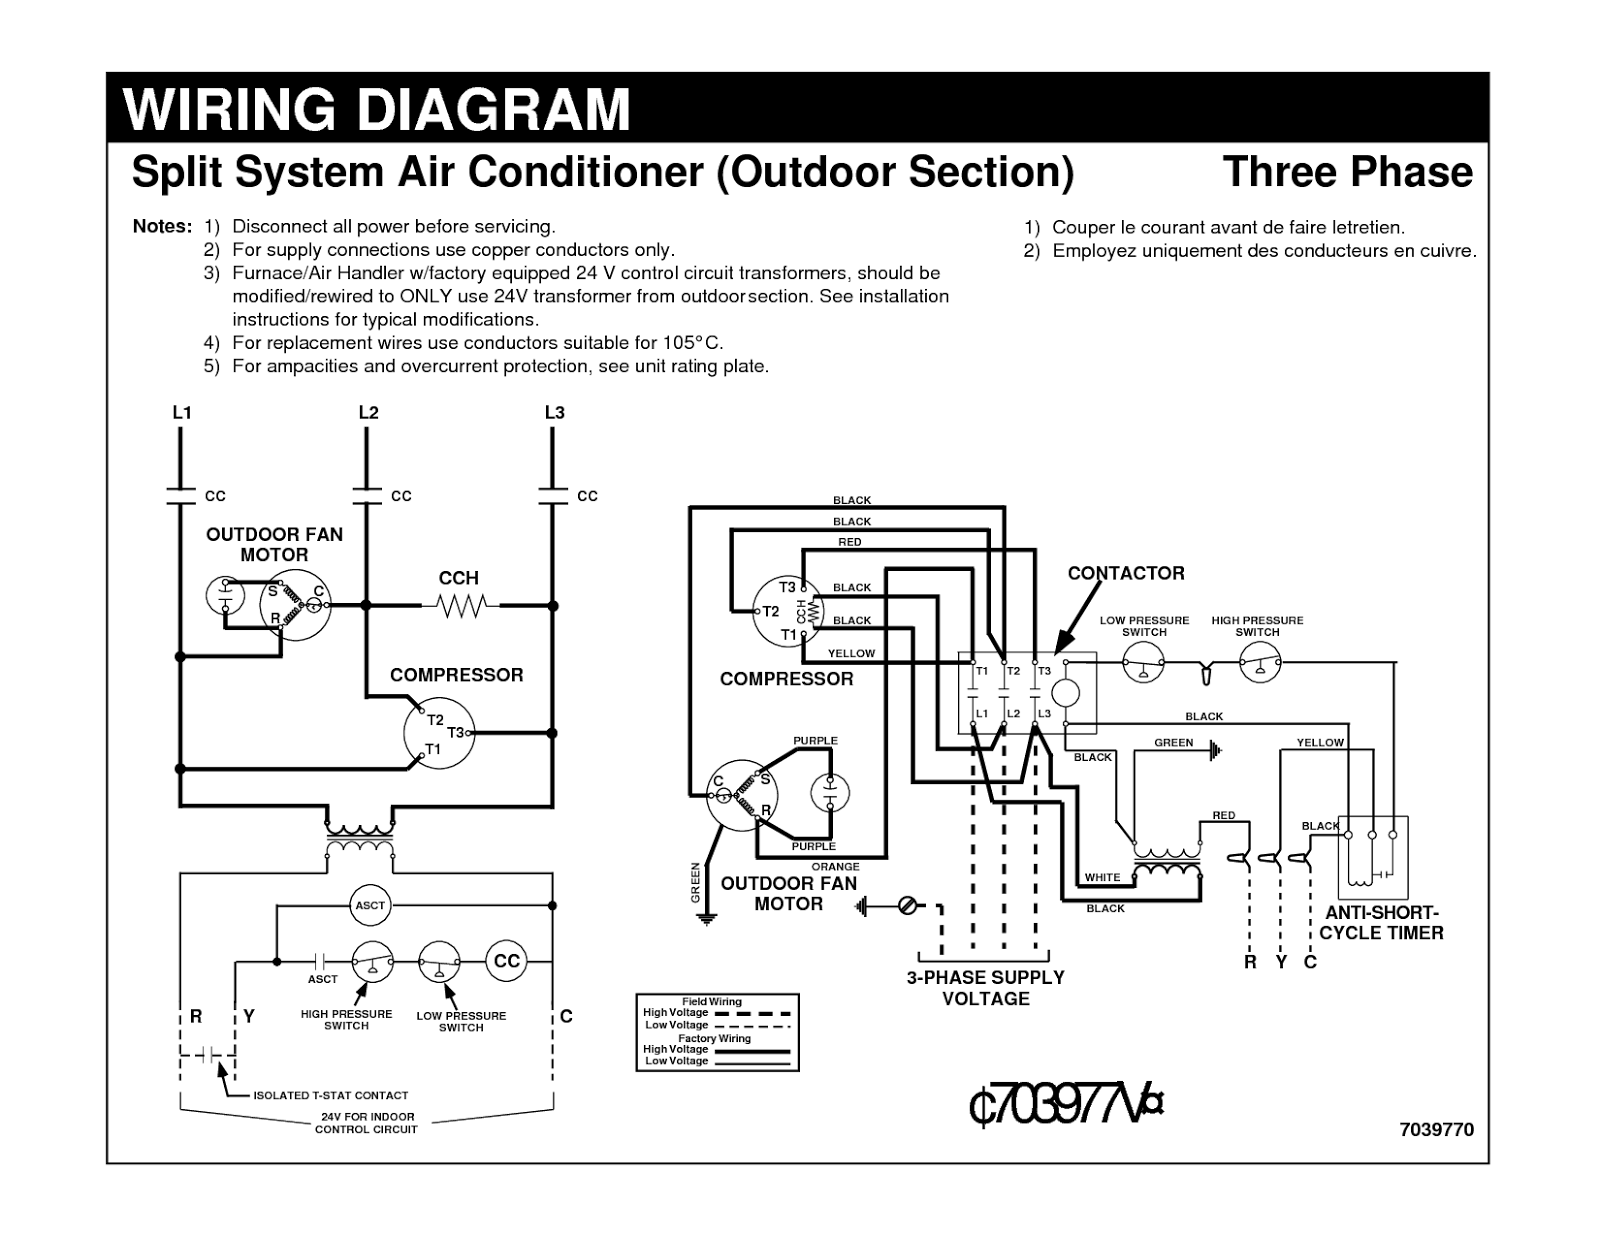 aircon electrical wiring diagram electrical wiring diagrams for air conditioning systems – part one ~ electrical knowhow electrical wiring diagram for aircon